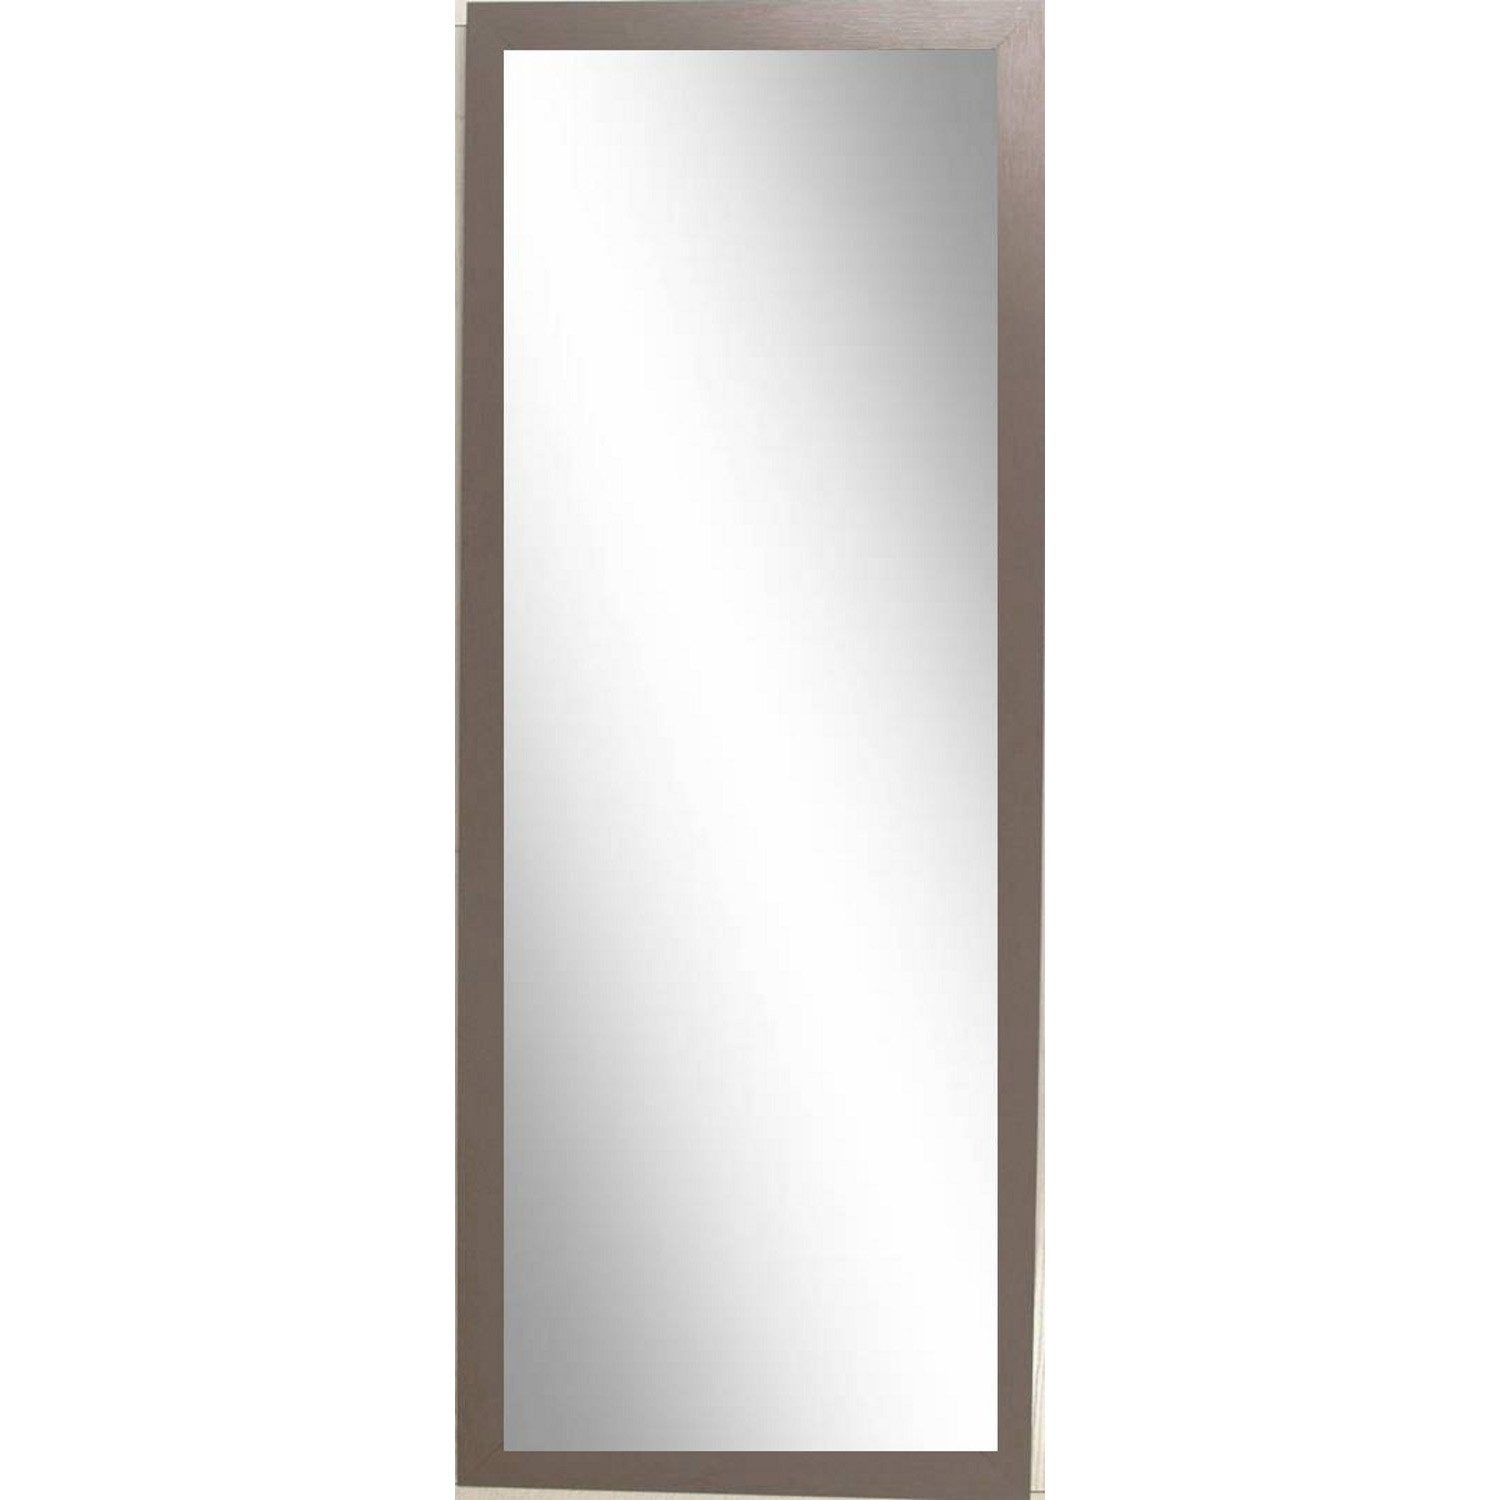 #615347 Related Keywords & Suggestions For Miroir 1027 armoire portes coulissantes miroir 120 1500x1500 px @ aertt.com